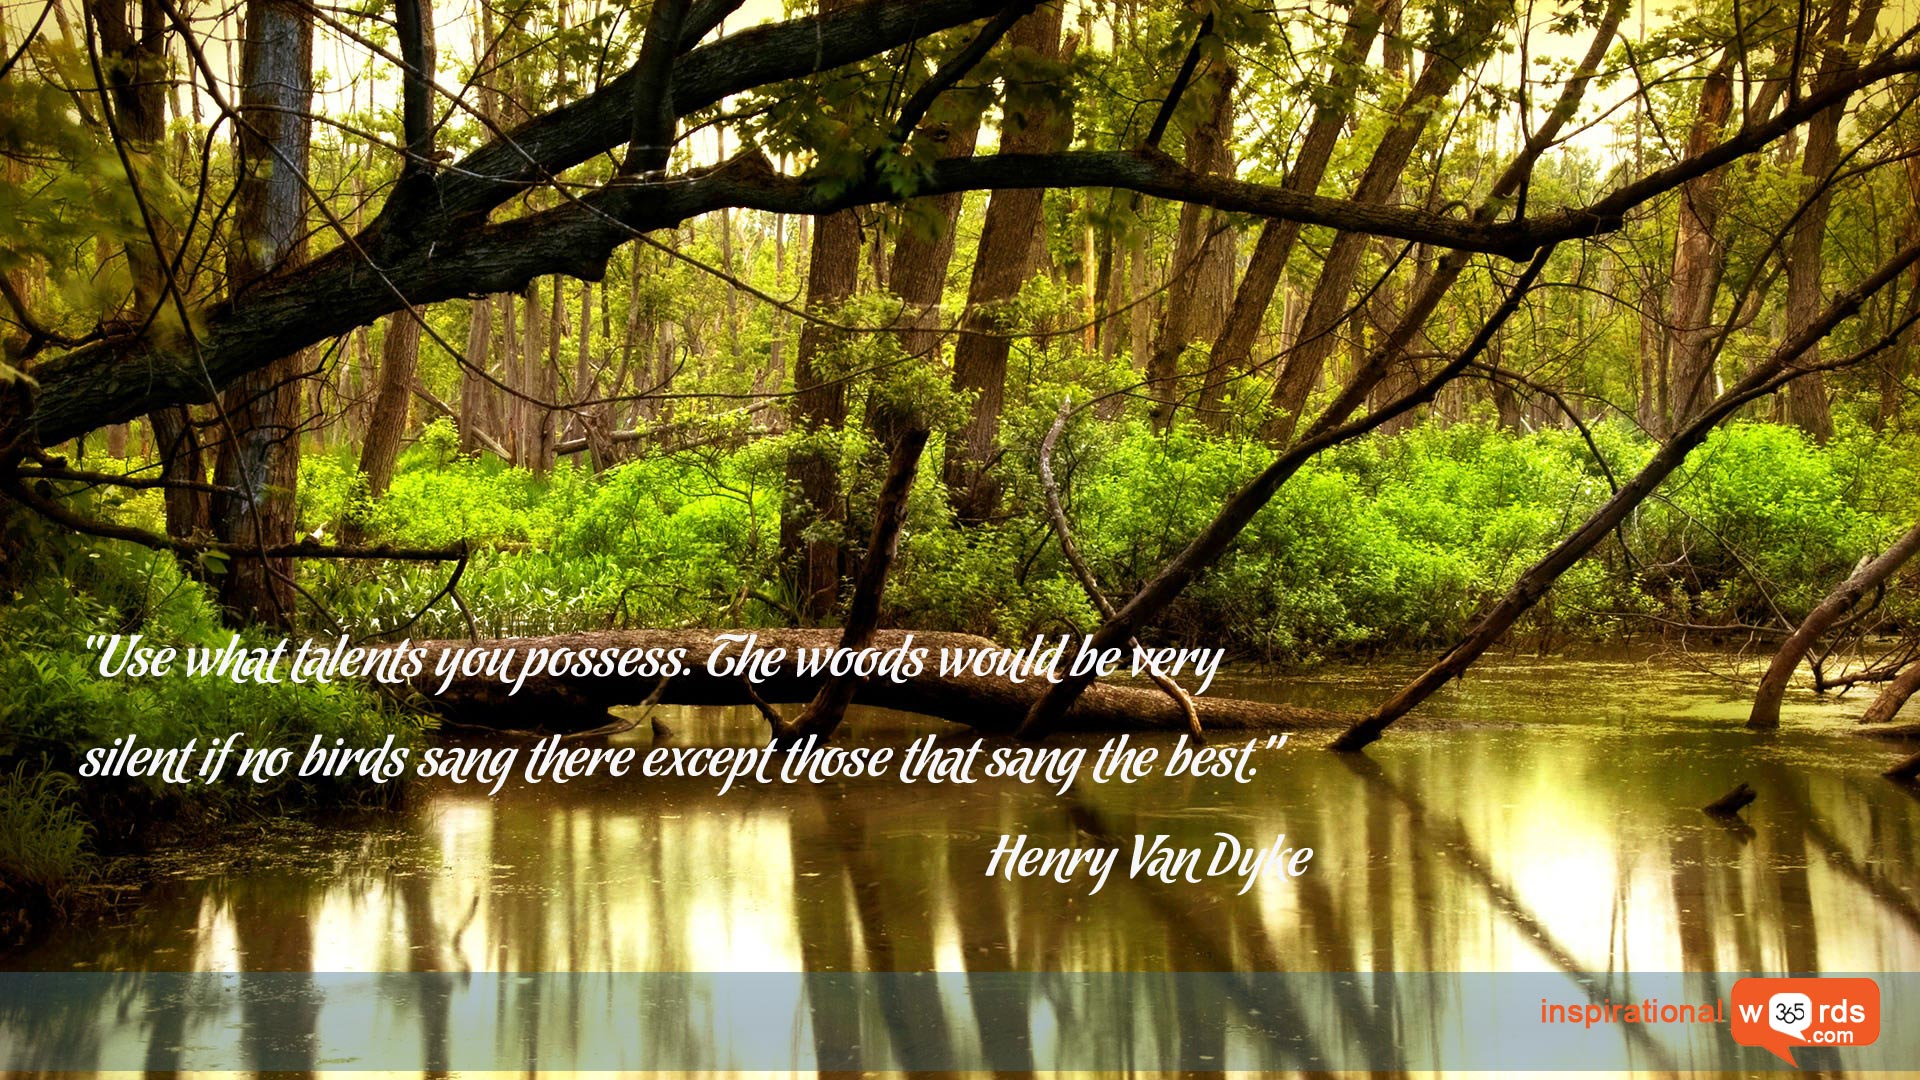 Inspirational Wallpaper Quote by Henry Van Dyke